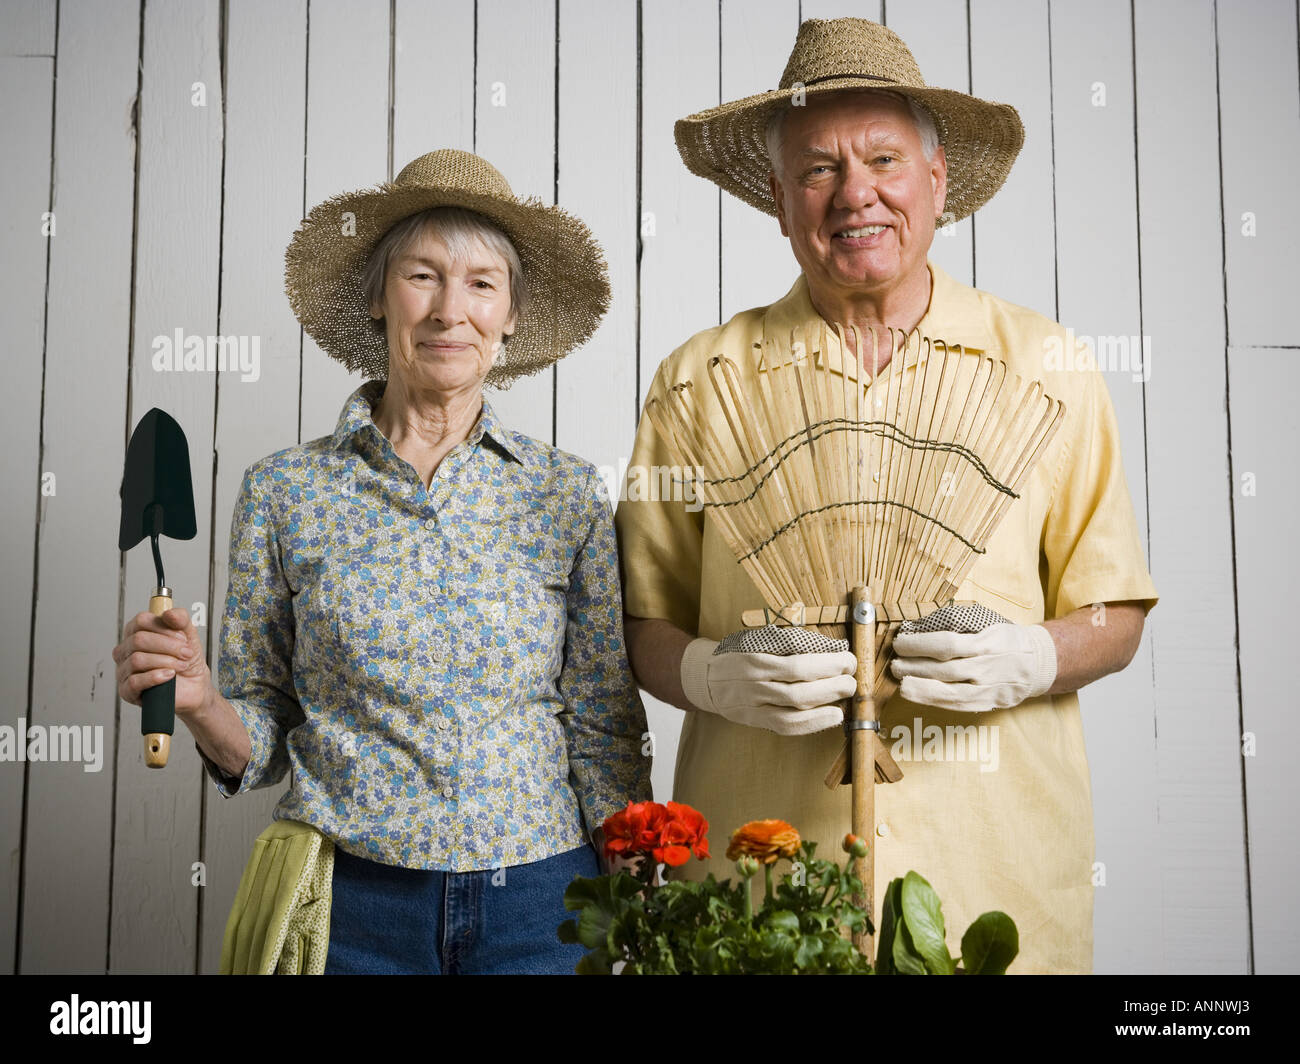 Portrait of an elderly couple standing with gardening tools stock photo royalty free image for Gardening tools for the elderly